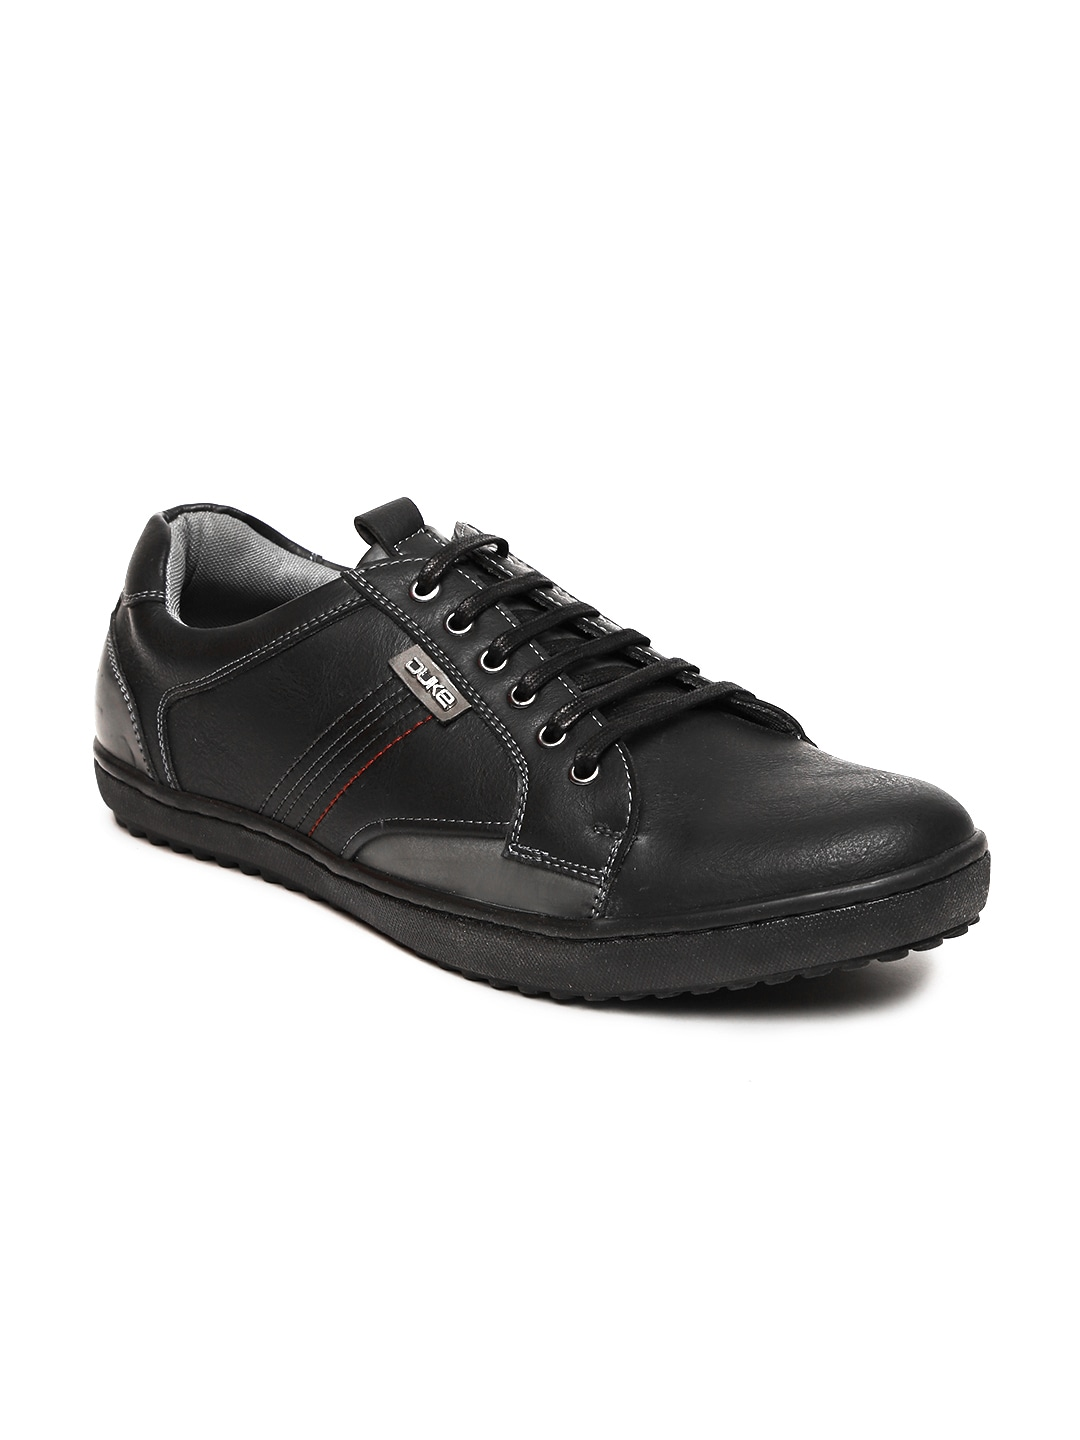 f6b96ab9a30f Buy Duke Men Black Textured Mid Top Derby Shoes - Casual Shoes for ...